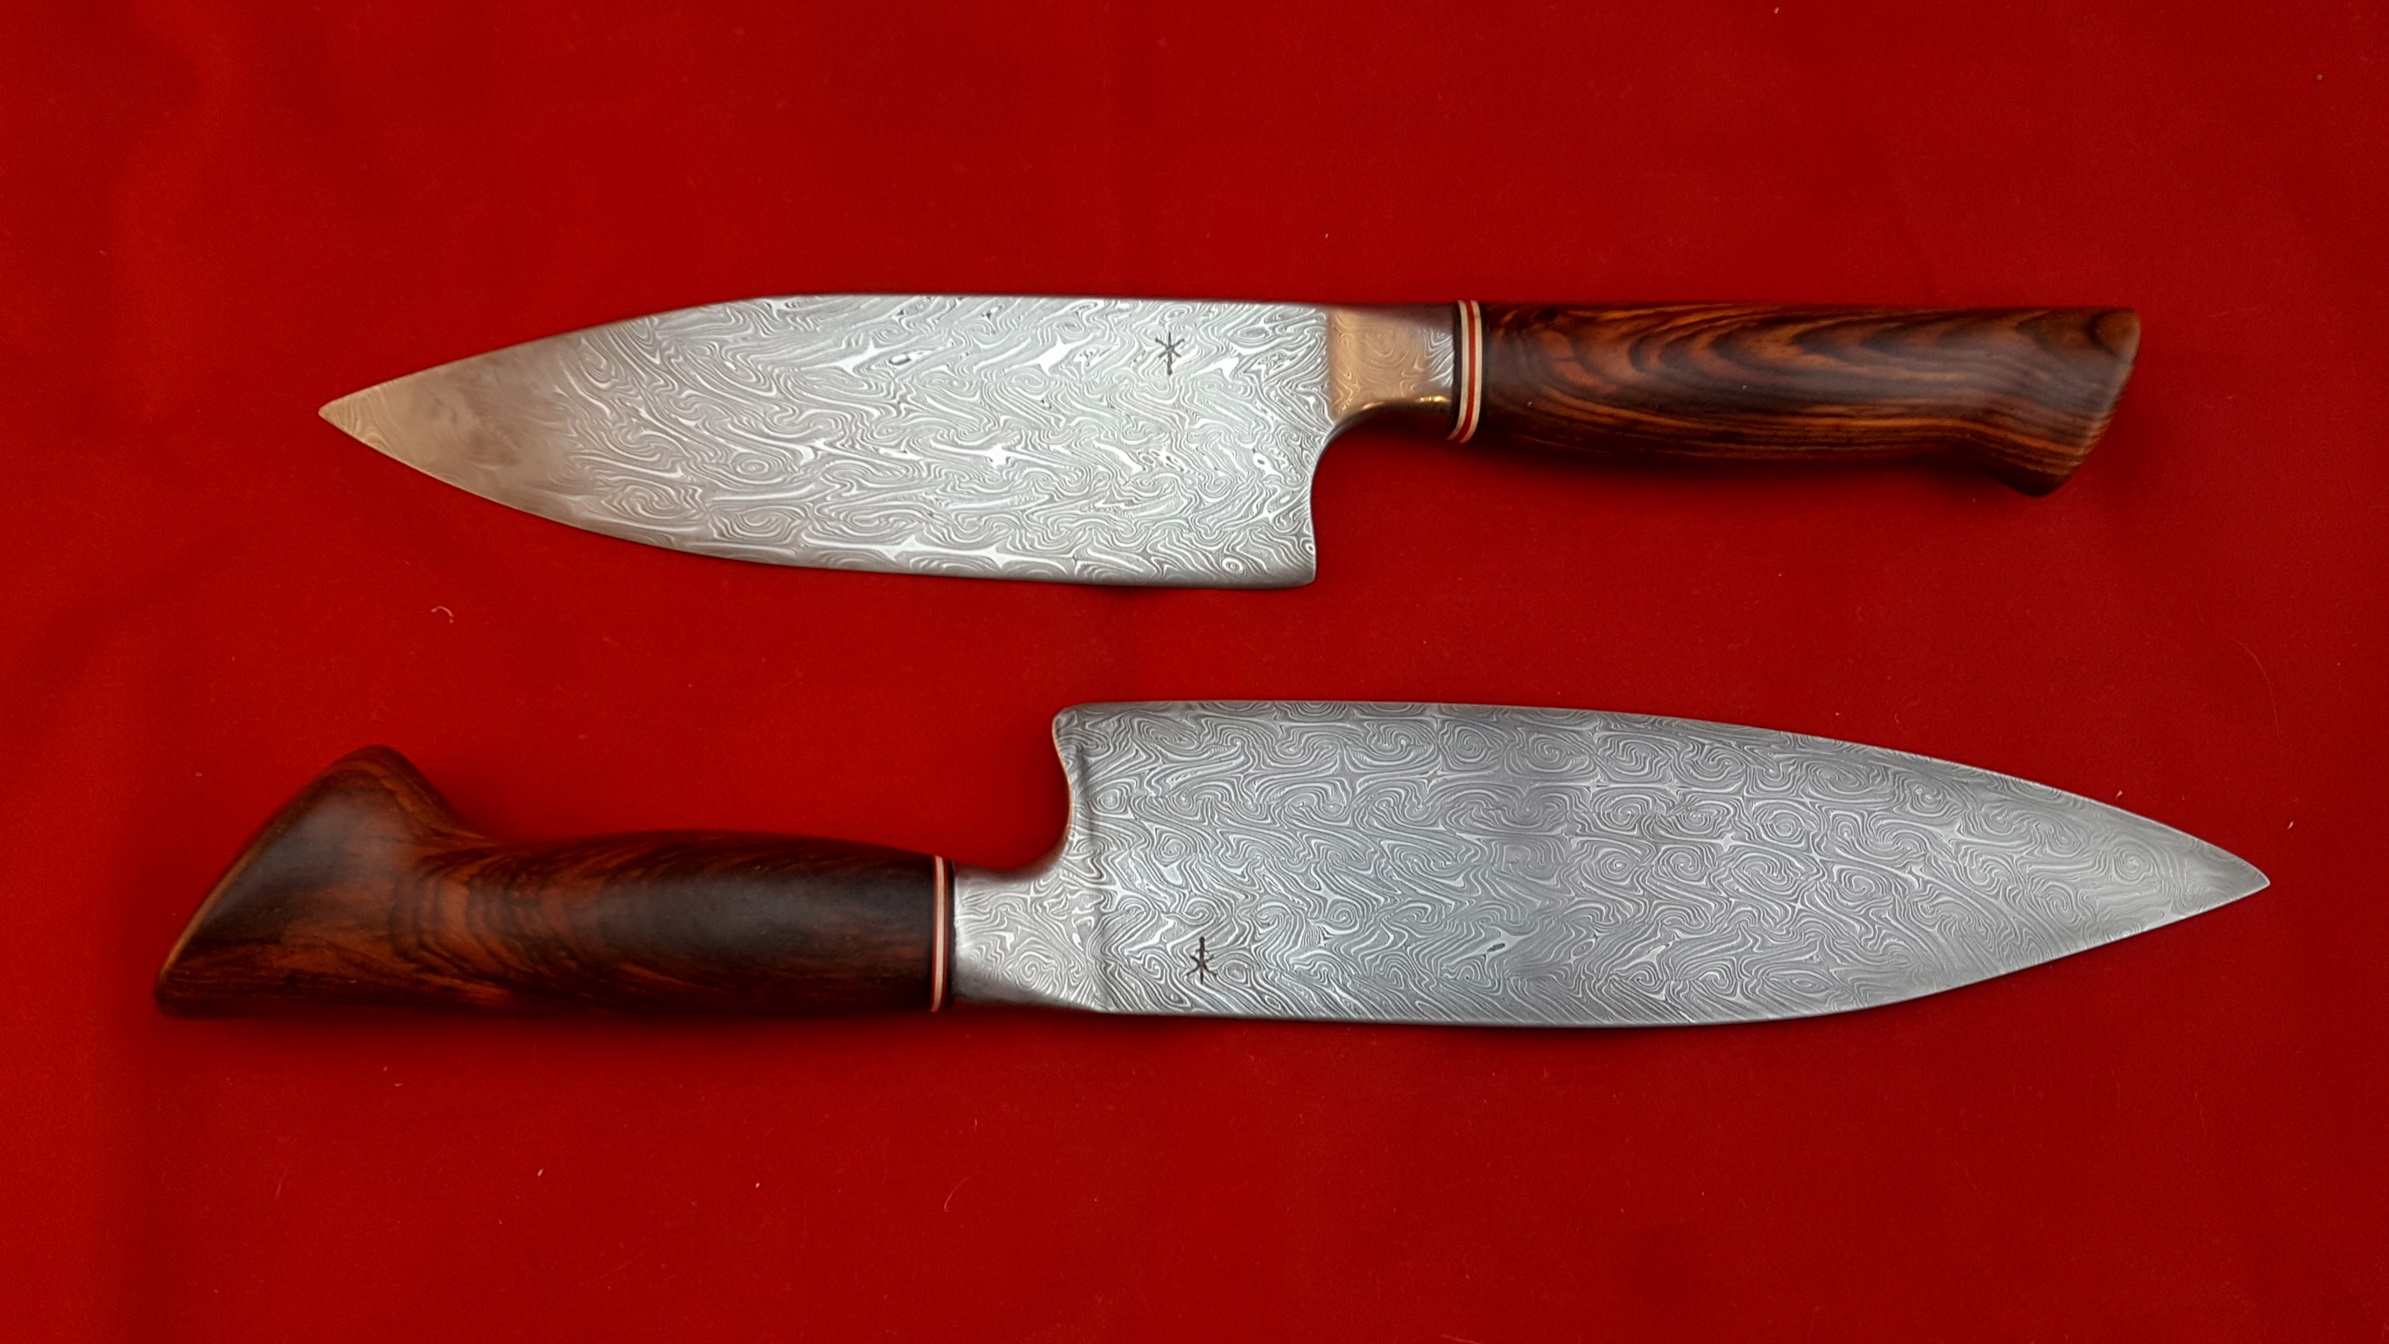 Two large chef's knives,